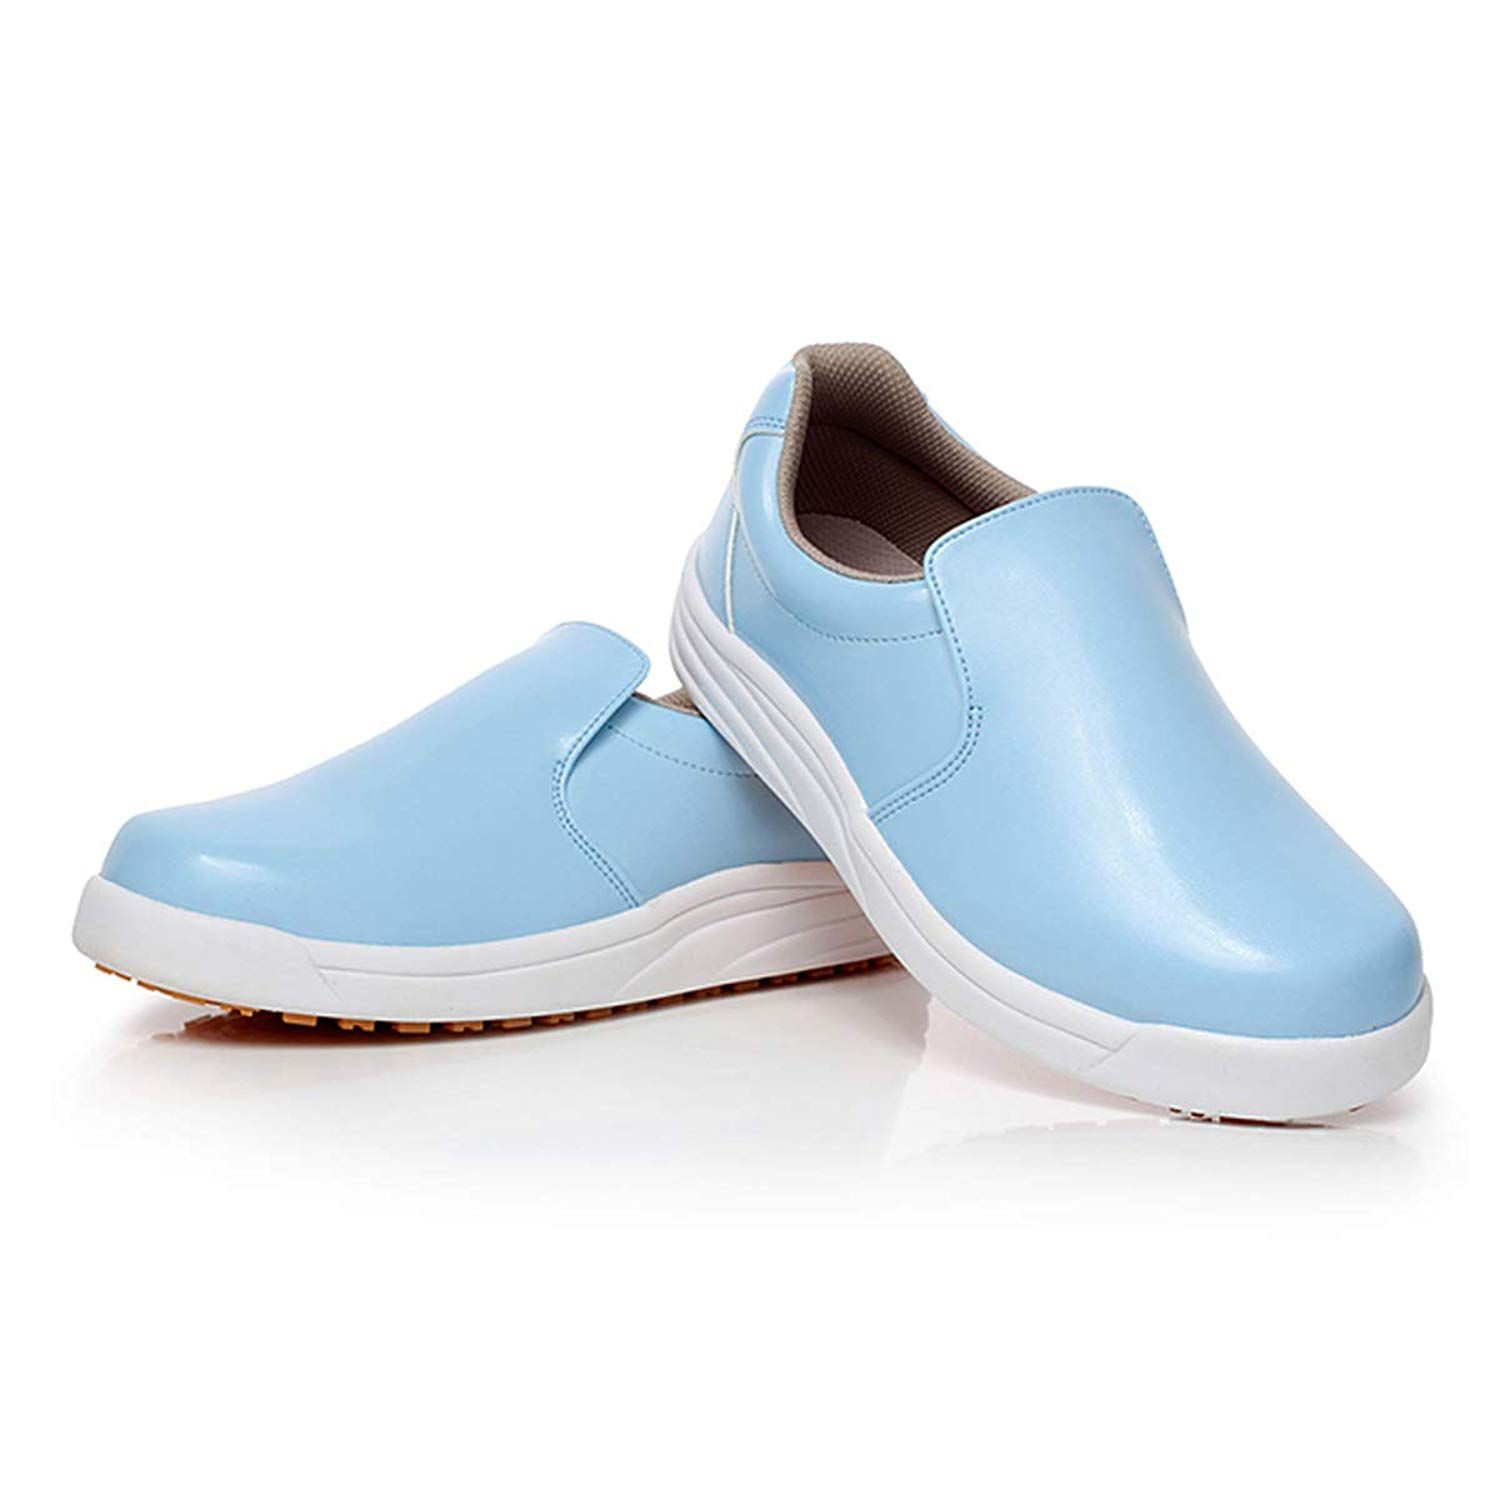 e5a59c399a86 Get Quotations · Unisex Men Women s Breathable Slip-on Safety Shoes Non-Slip  Waterproof Factory Kitchen